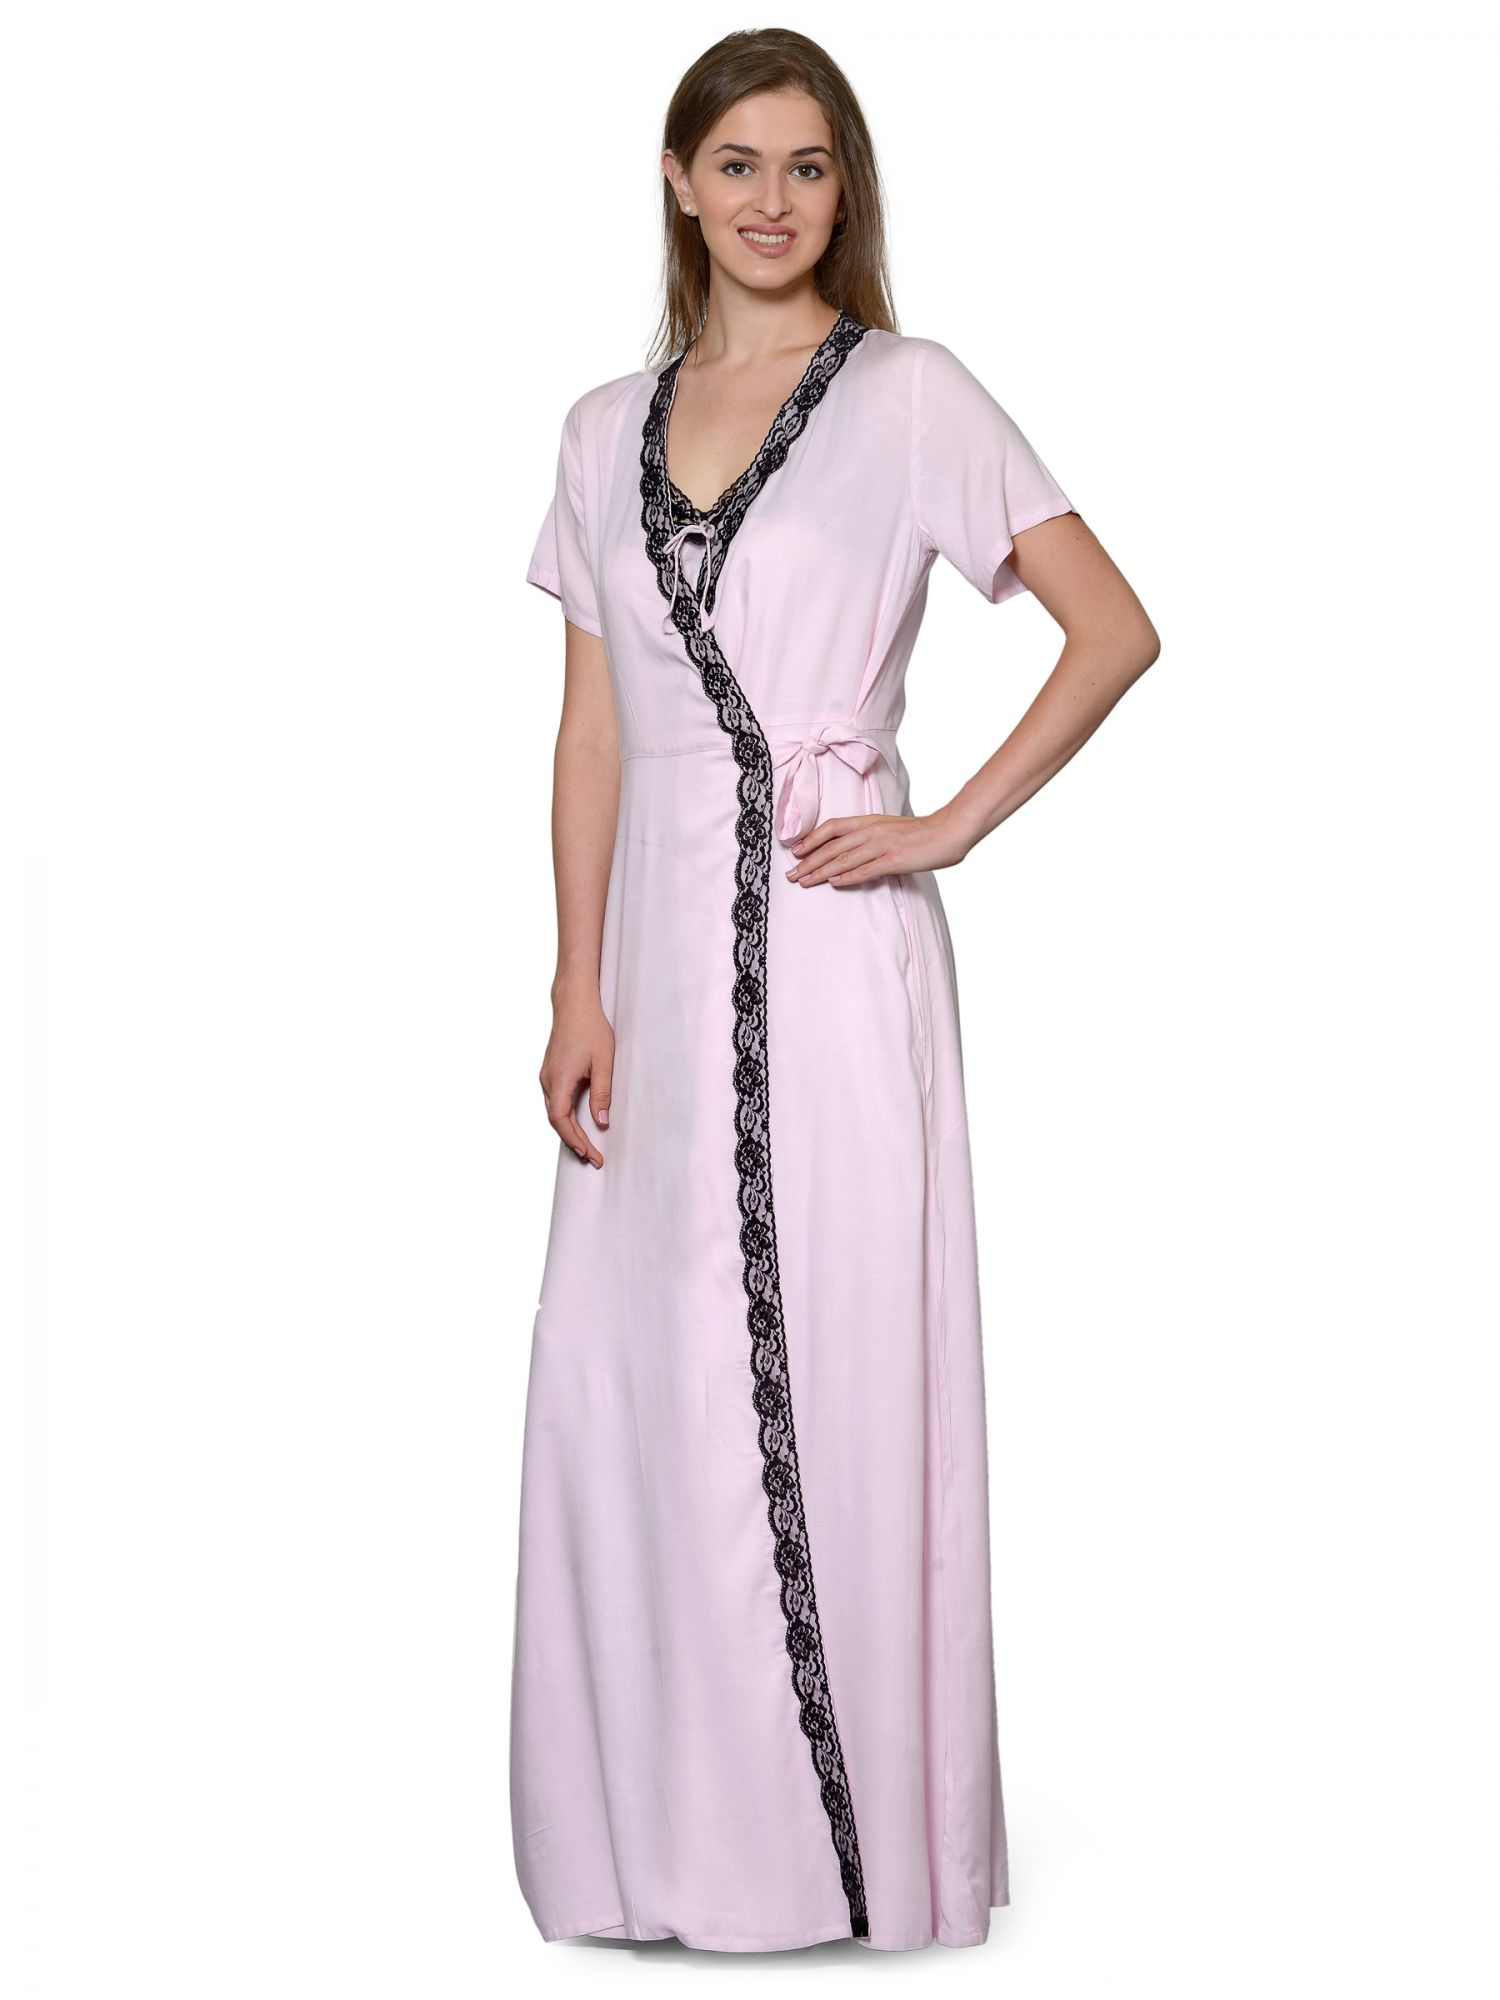 Lace Embellished Nighty With Robe in Baby Pink